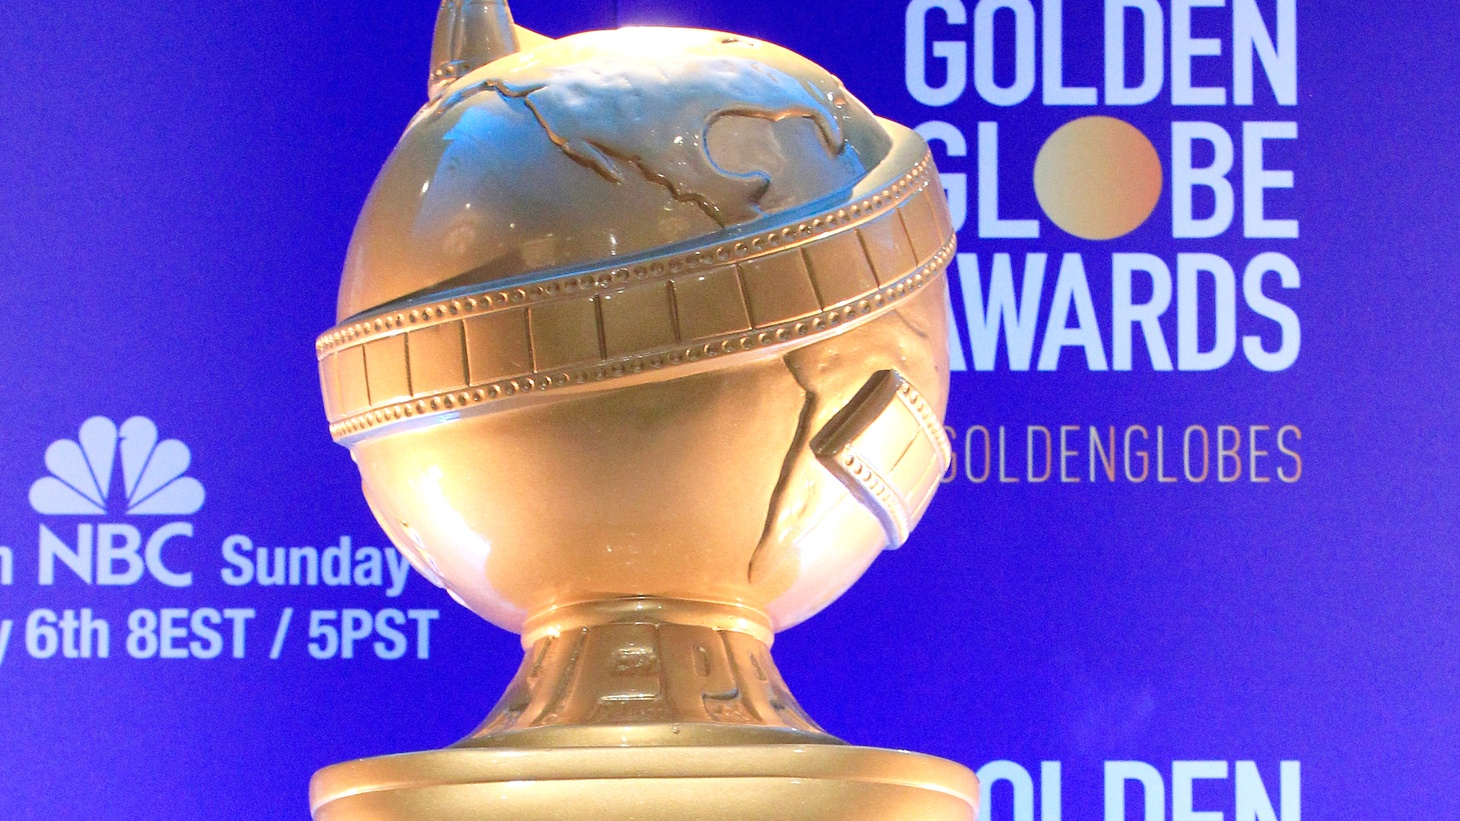 Following an LA Times investigation into corruption at the Hollywood Foreign Press Association that led to tremendous industry pushback, NBC is opting not to air the Golden Globes, at least for 2022.